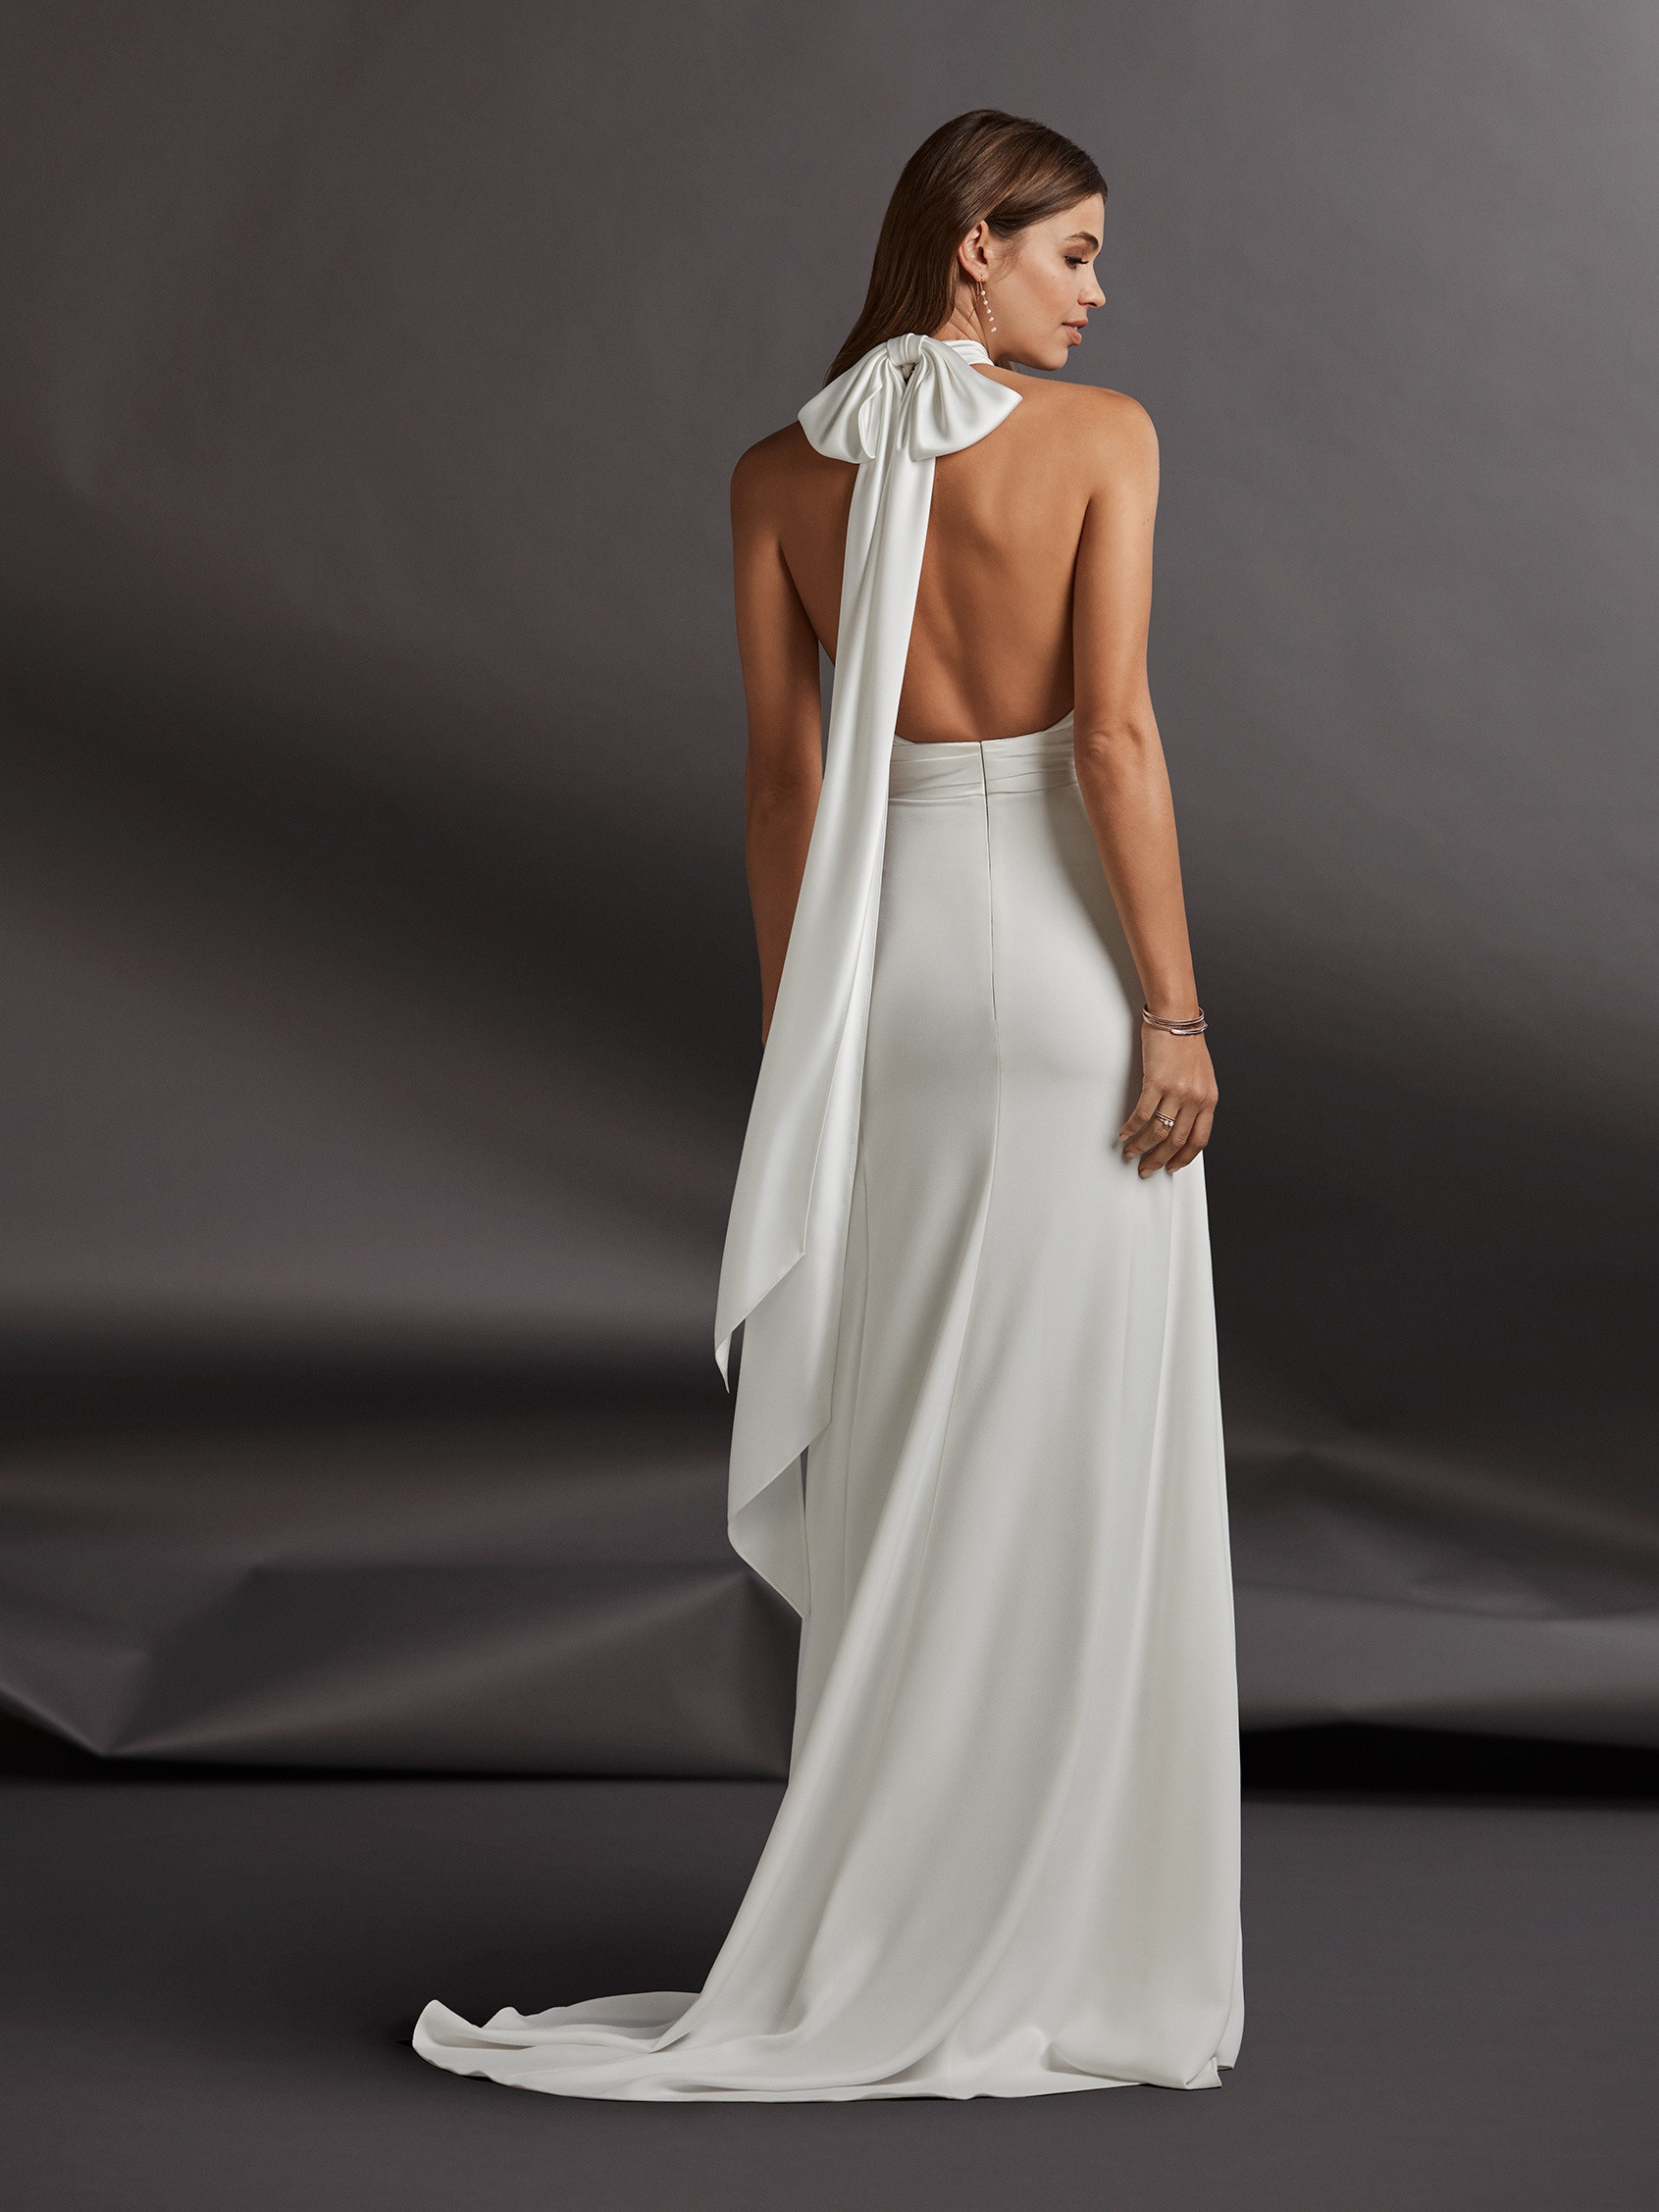 b0ef23a2 Halter Neckline Crepe Sheath Wedding Dress | Kleinfeld Bridal